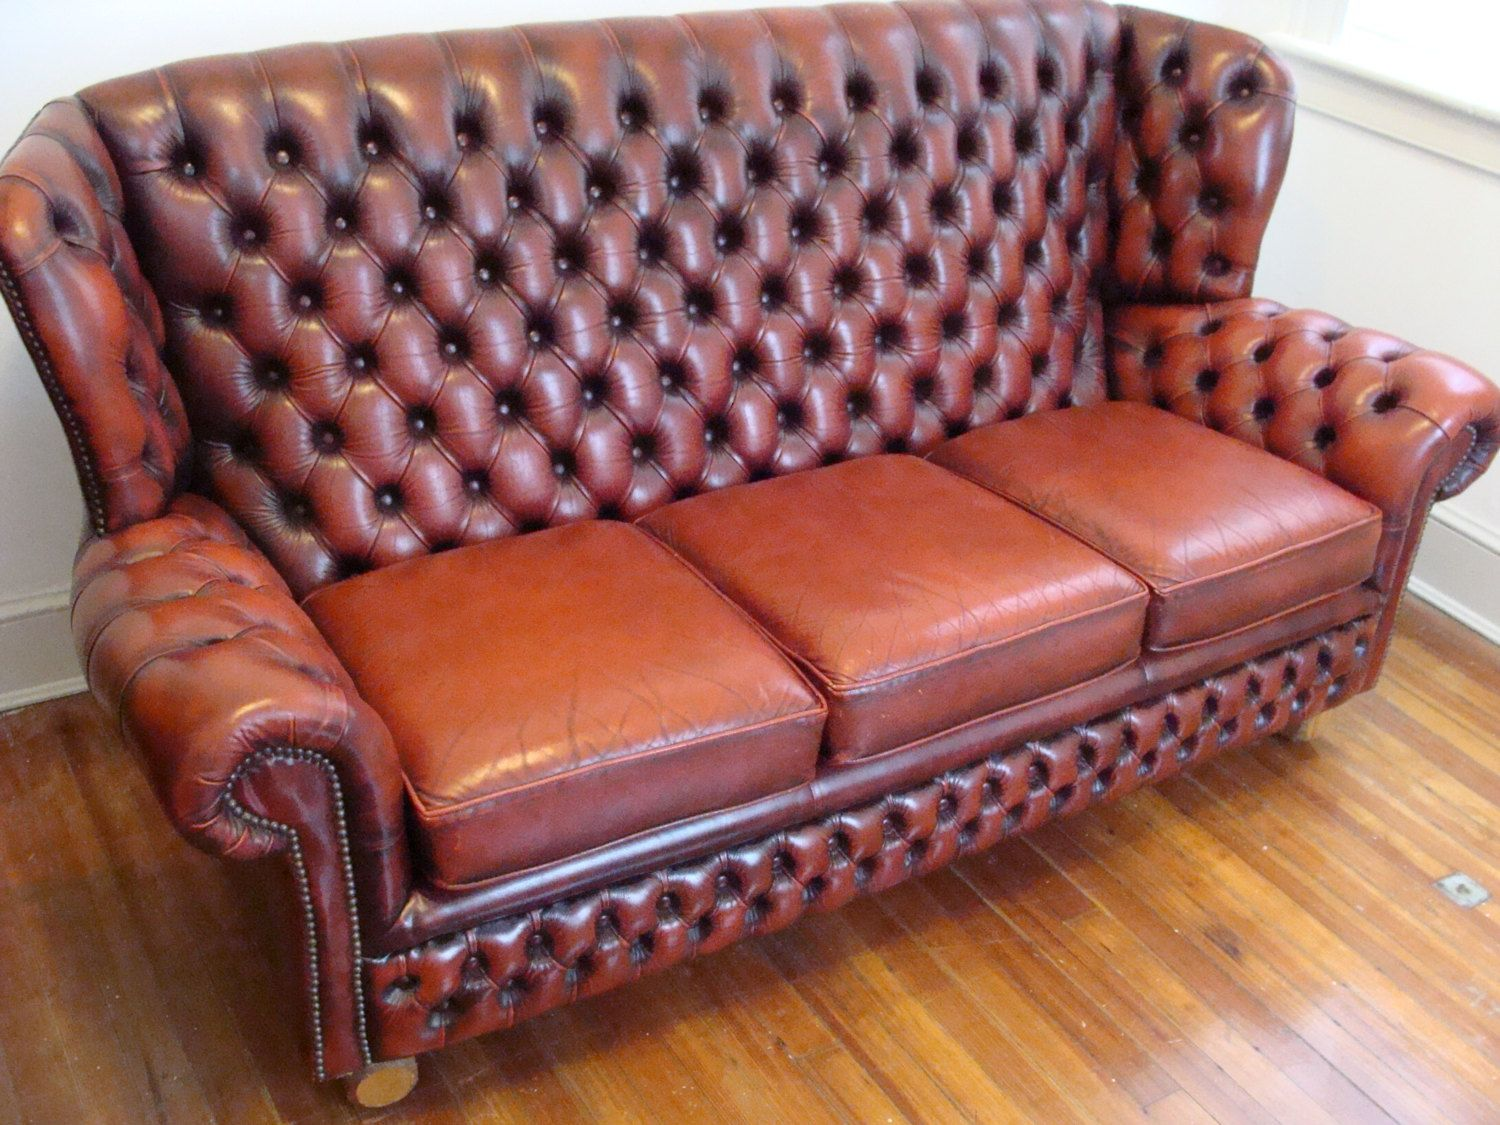 Gorgeous vintage english monks chesterfield sofa tufted high wing back british 3 seater couch 6ft